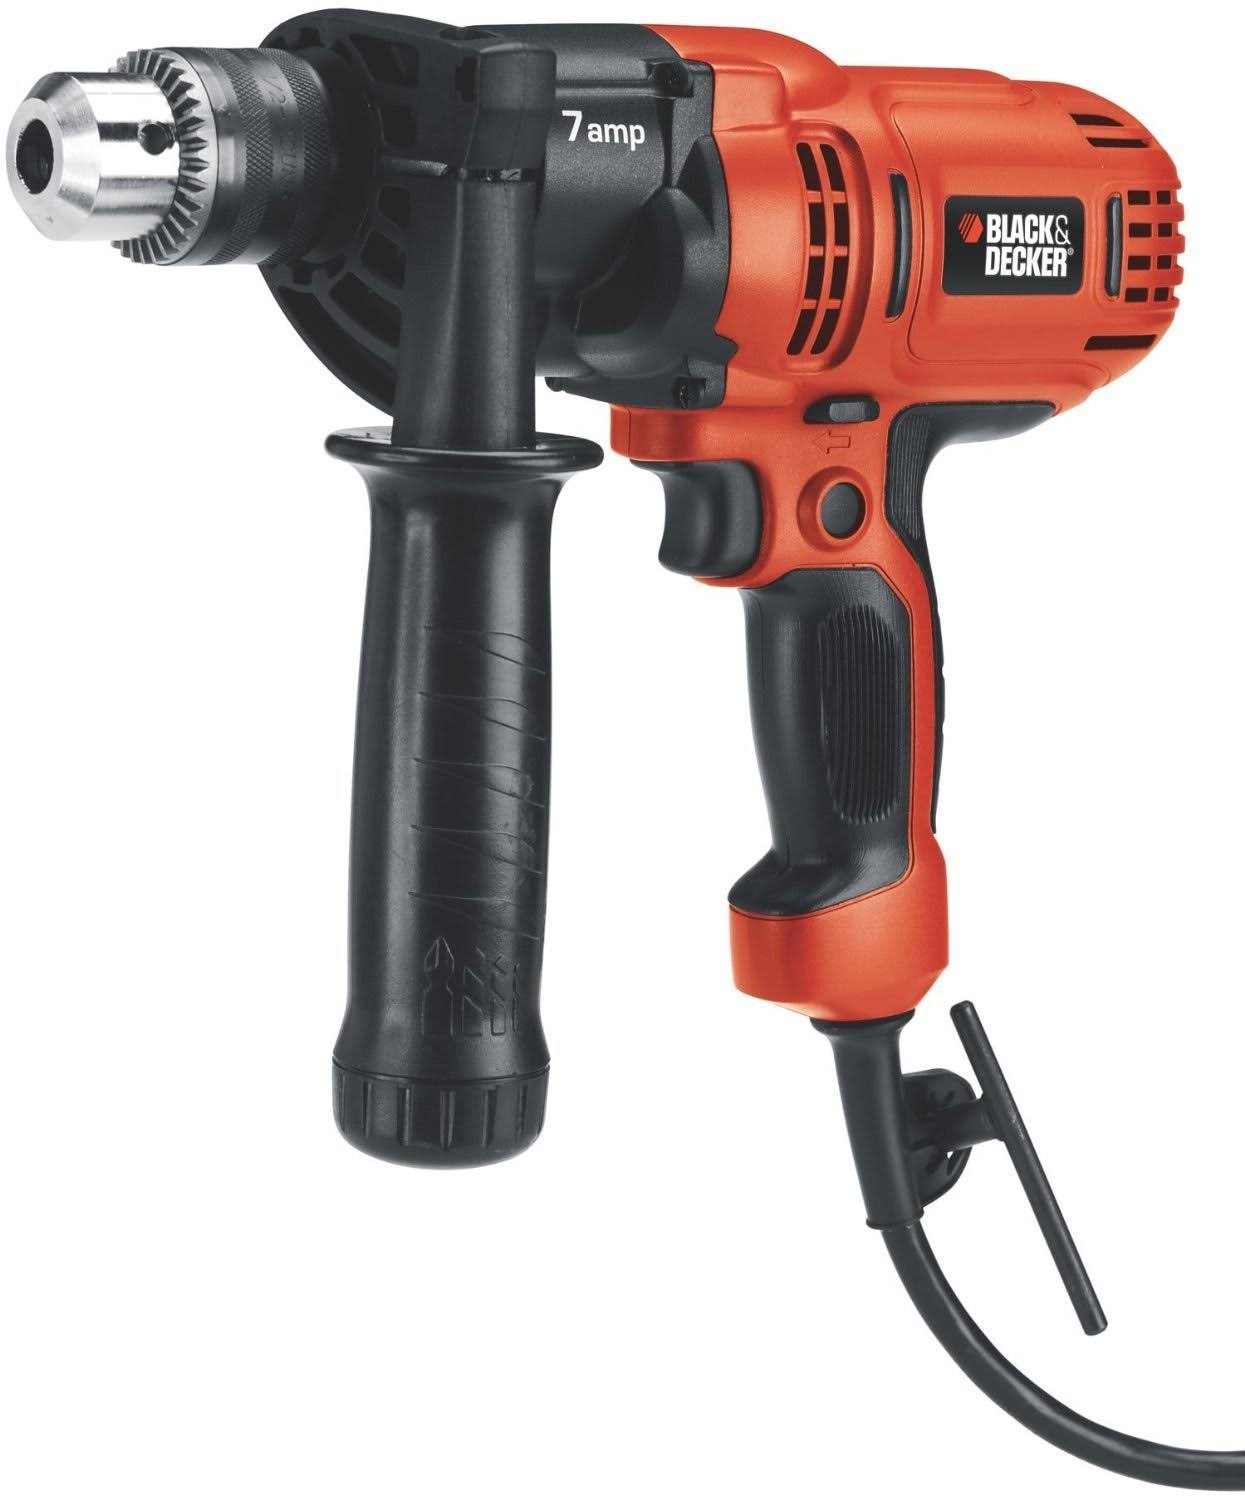 Black and Decker Drill - 7A